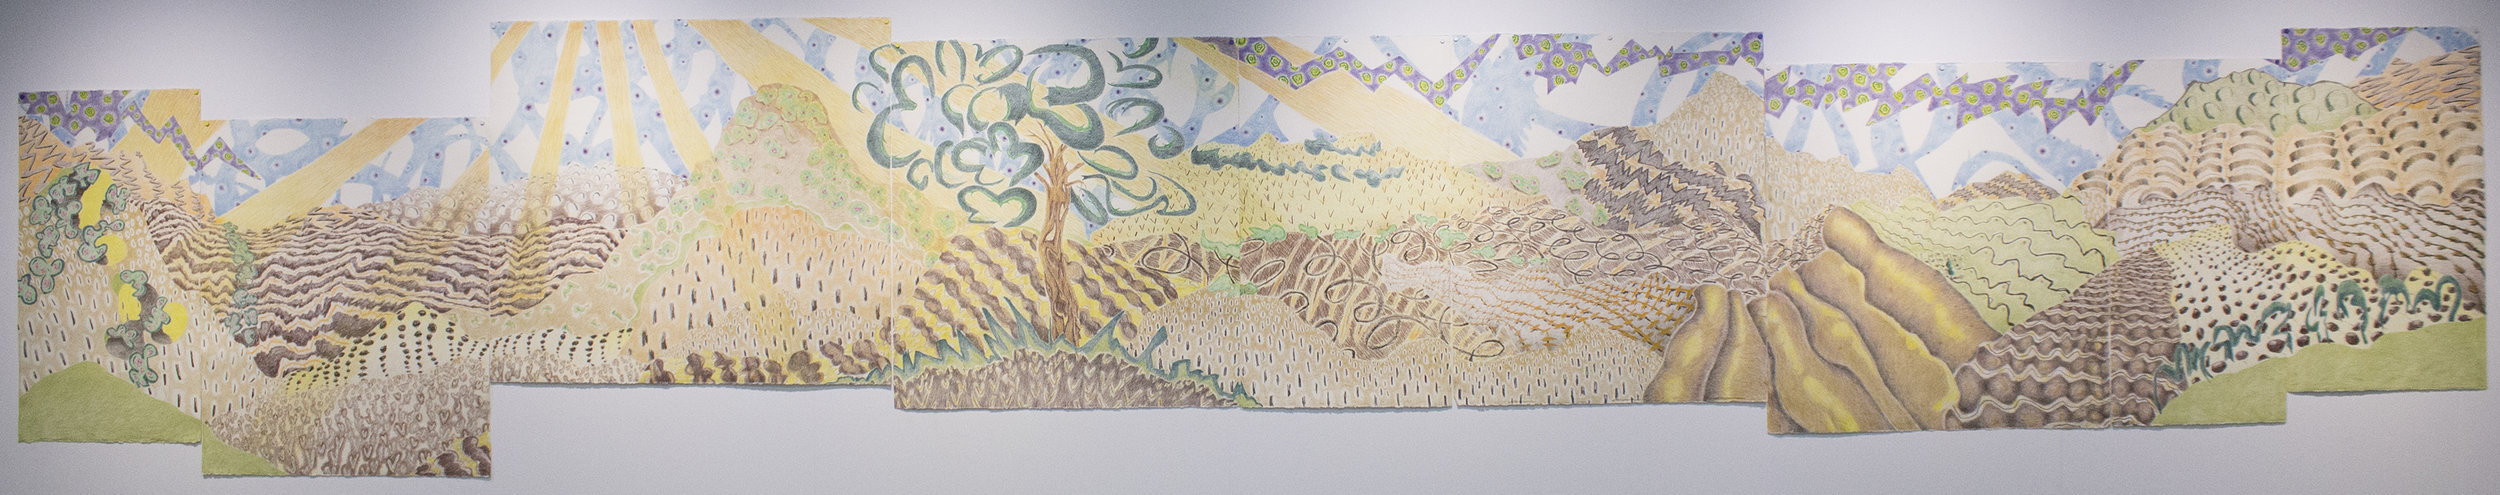 La corona, the magic tree, and Nicolas de Santa Cruz, the Shepherd boy. Crayon on paper approximately 50 x 288 inches